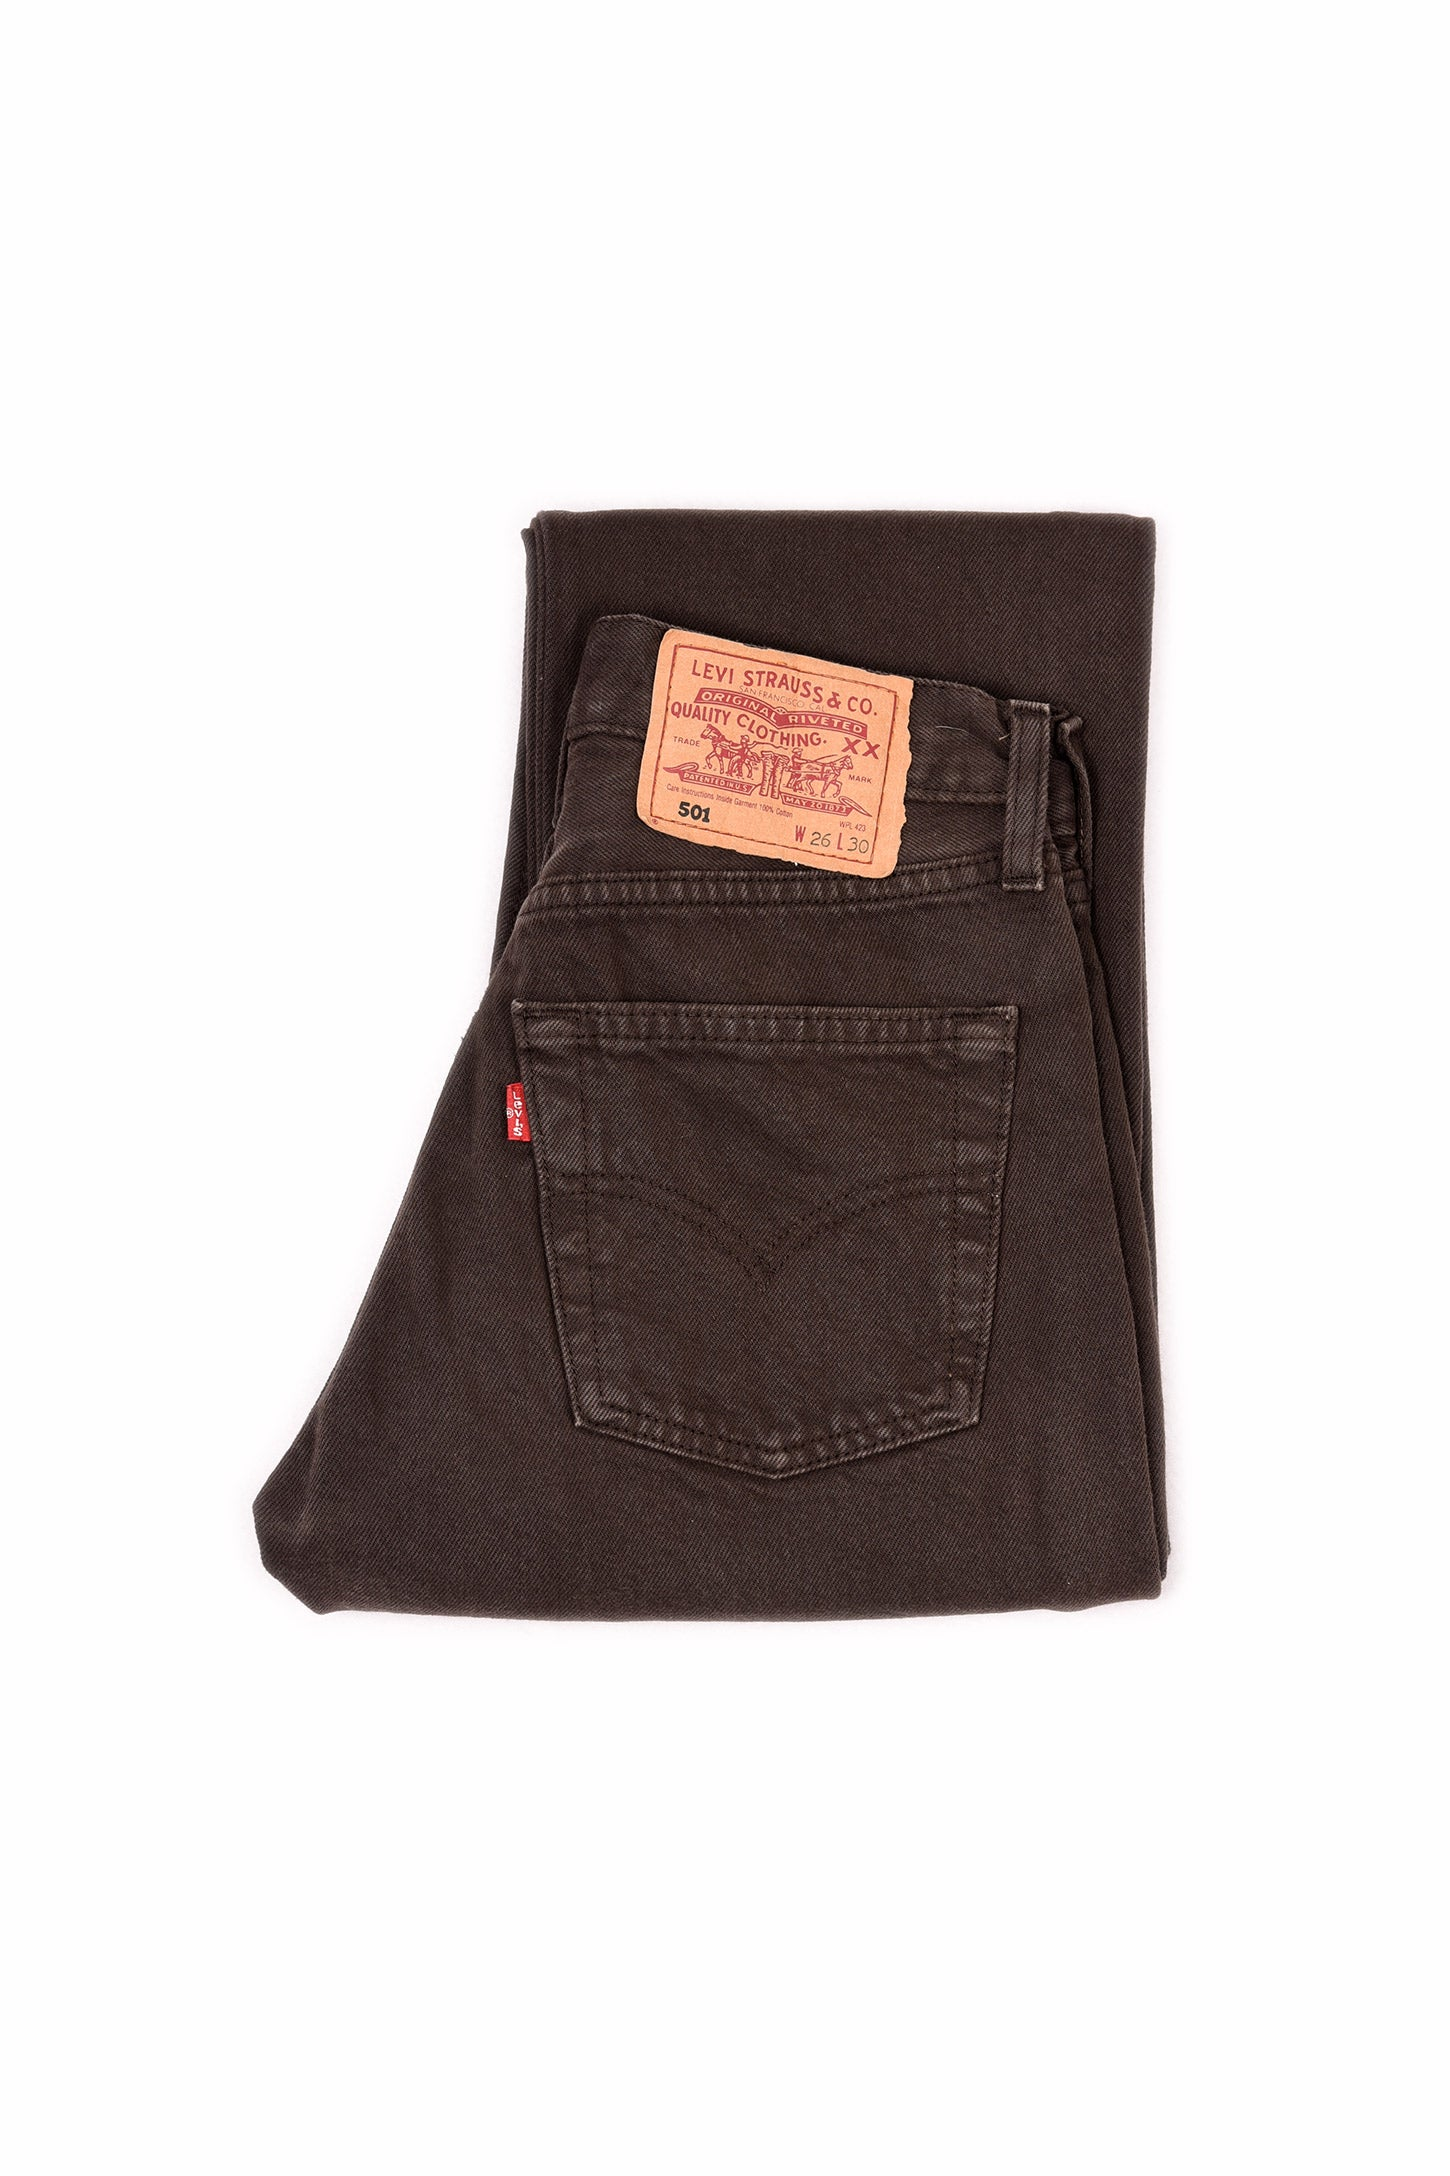 Second Hand - LEVI'S 501 ORIGINAL FIT JEANS BROWN - FRÅN Ö TILL A